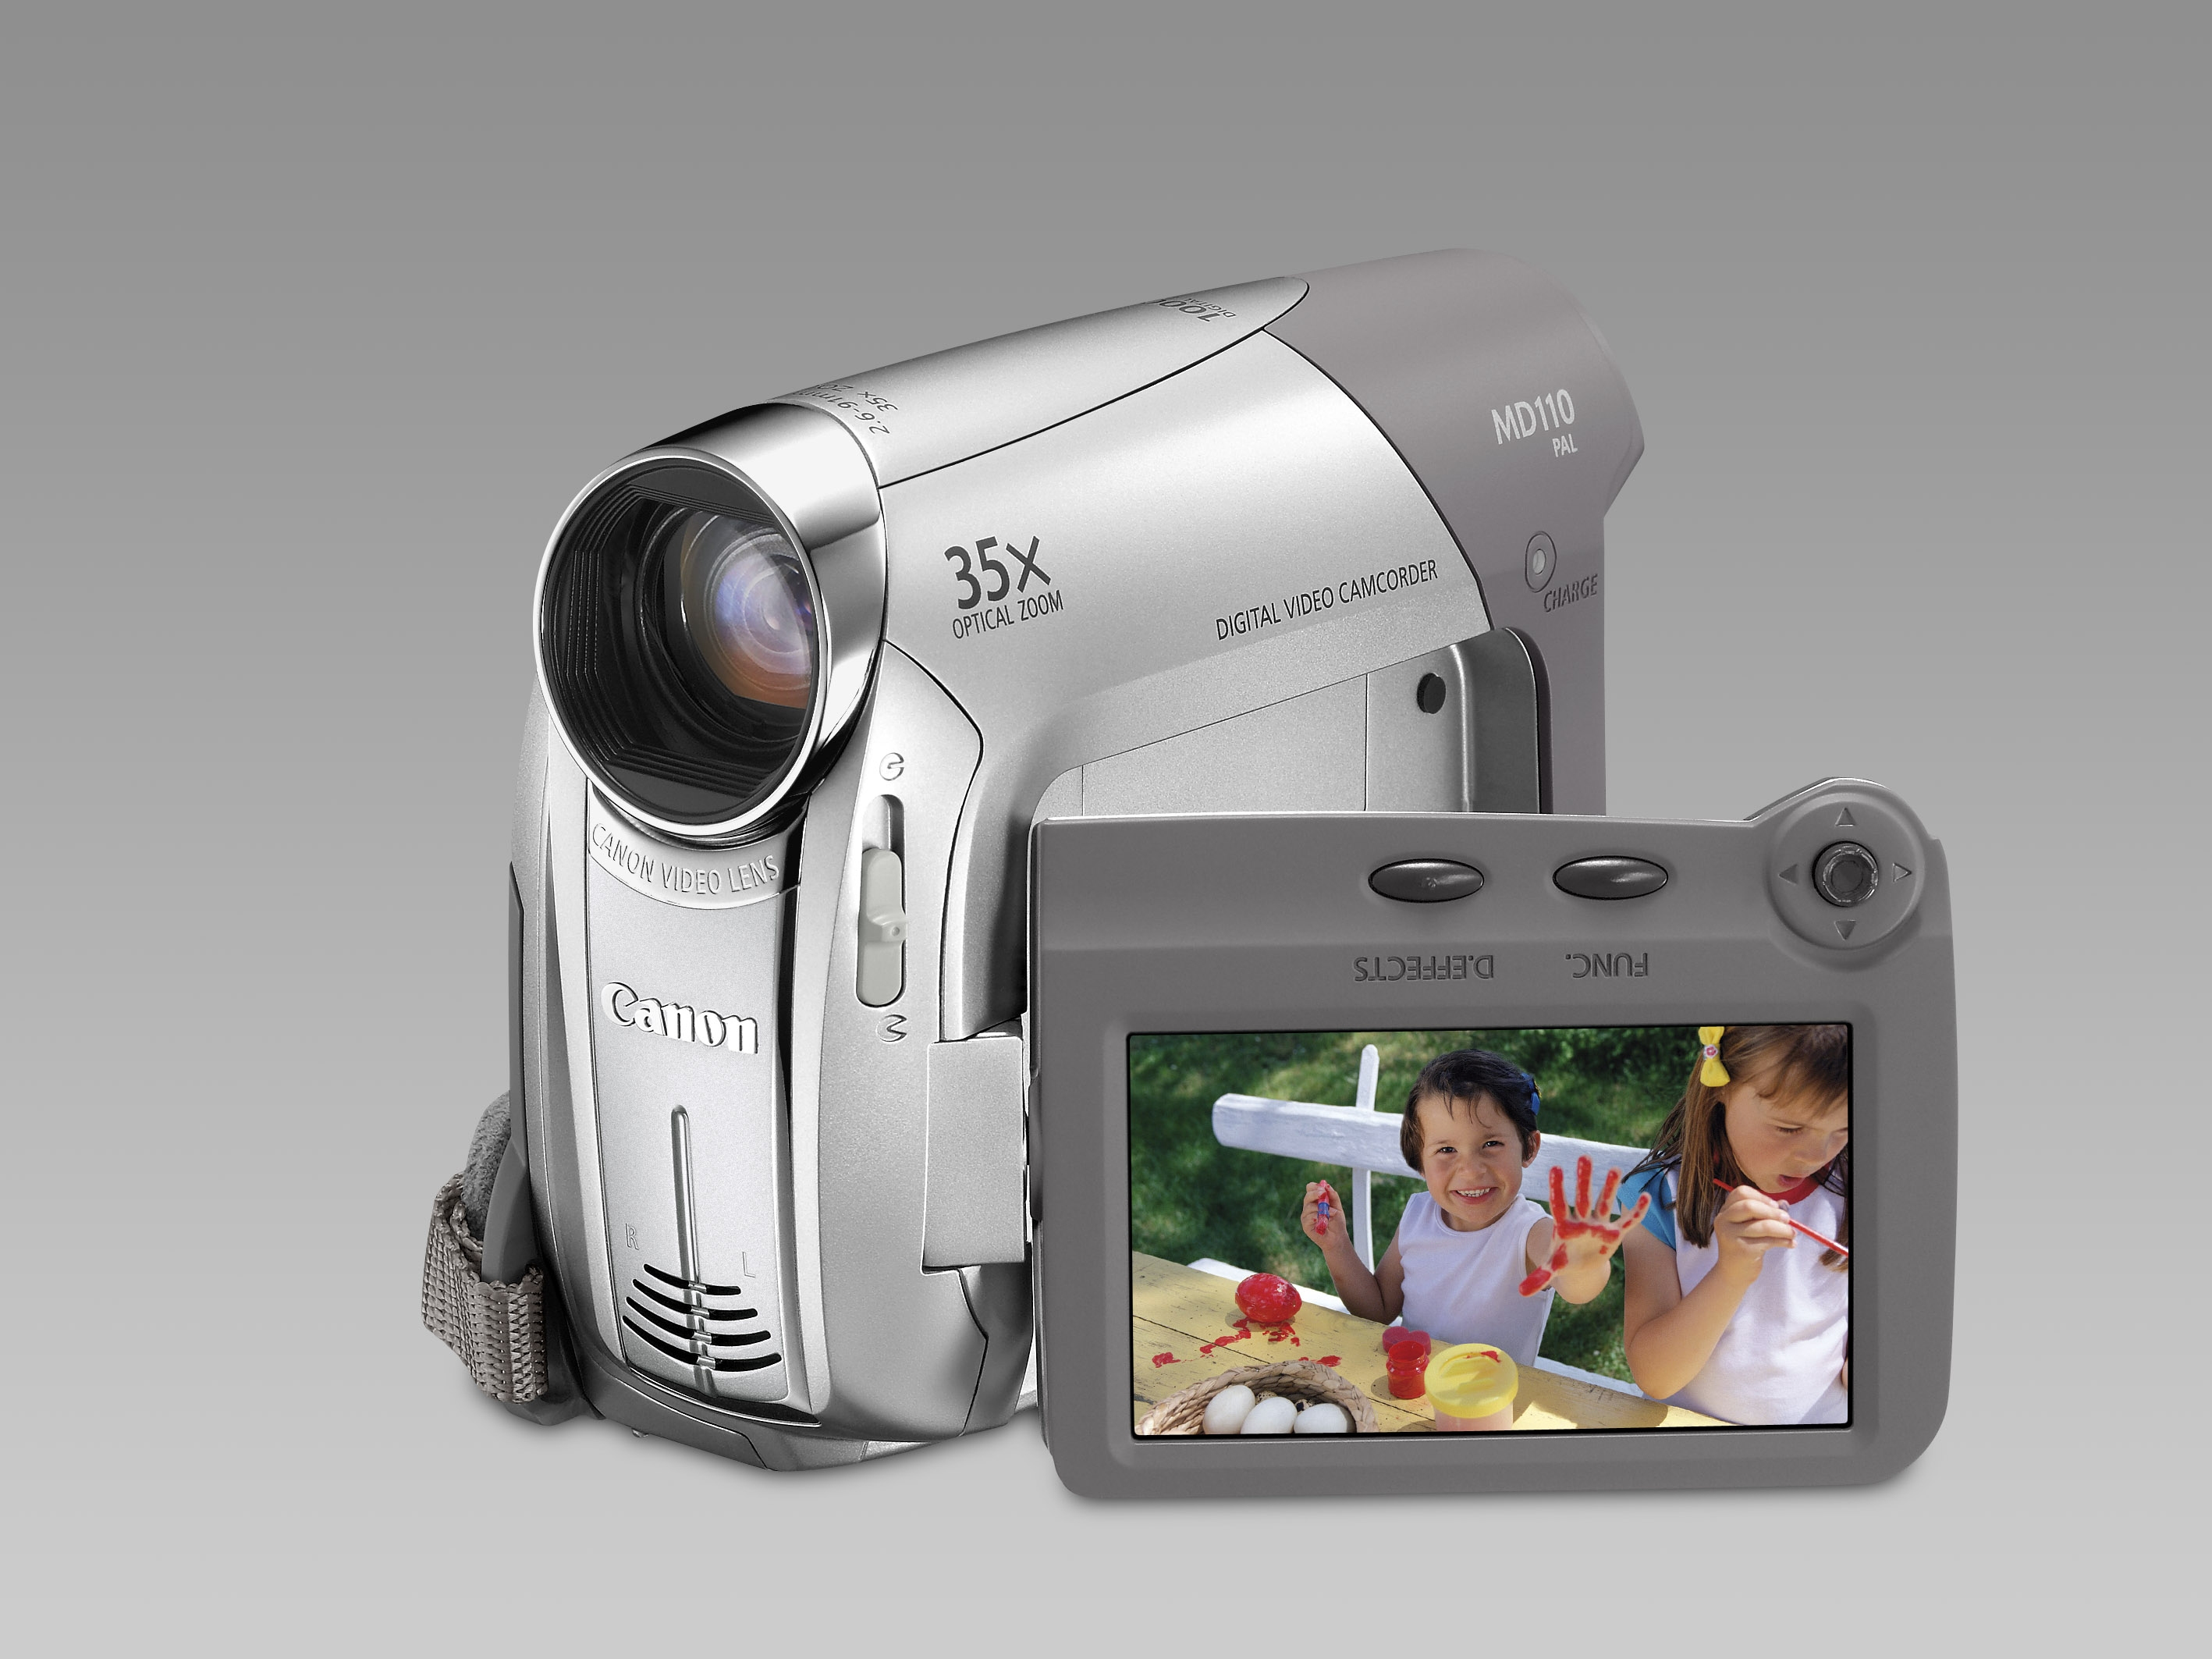 Canon MD110 Camcorder 0.8MP Argento